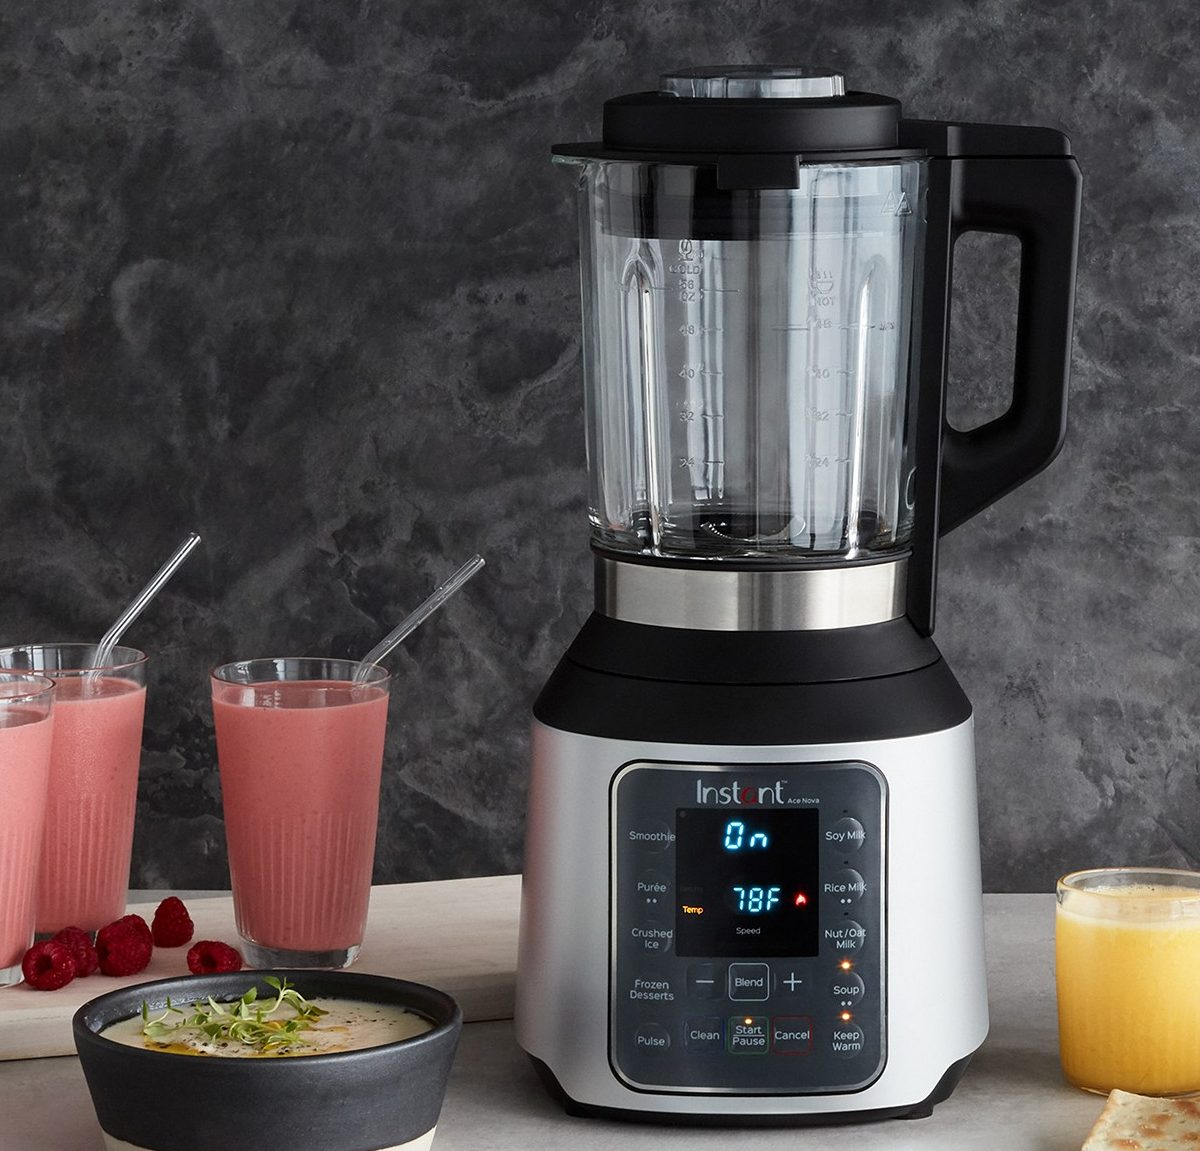 Instant Pot Ace Nova with soup and smoothies